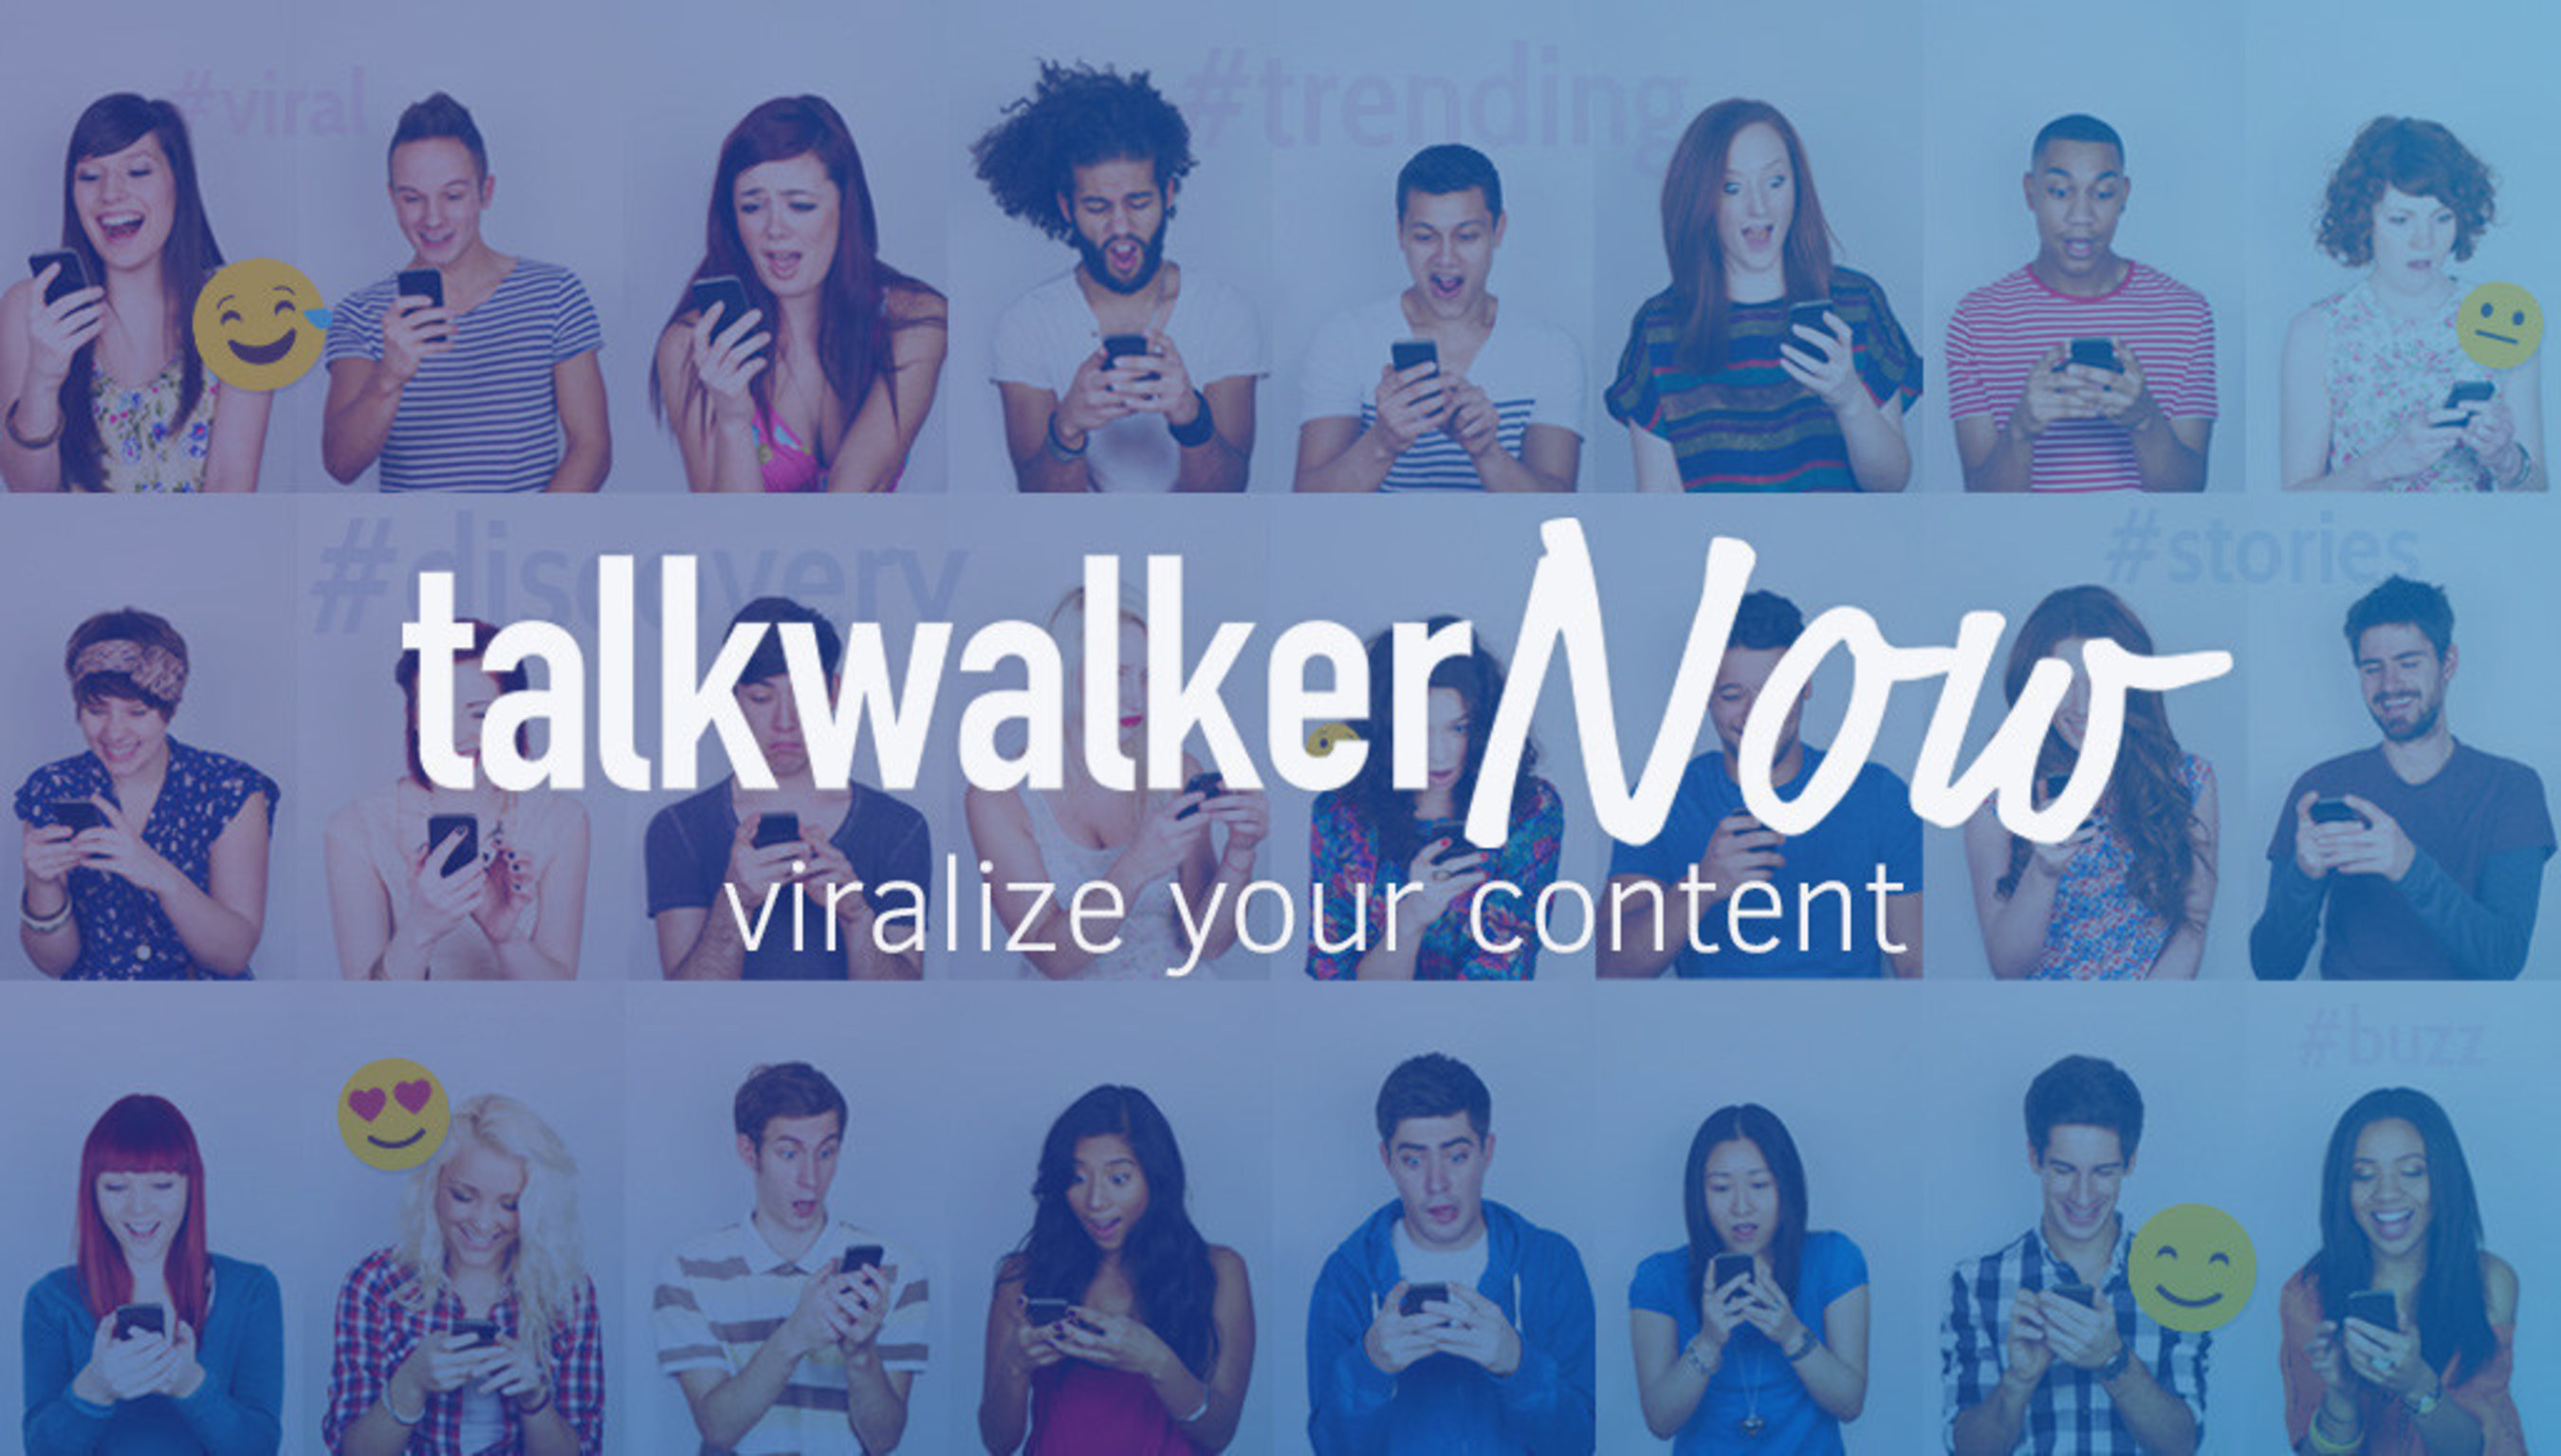 talkwalkerNow - the ultimate search engine for trends